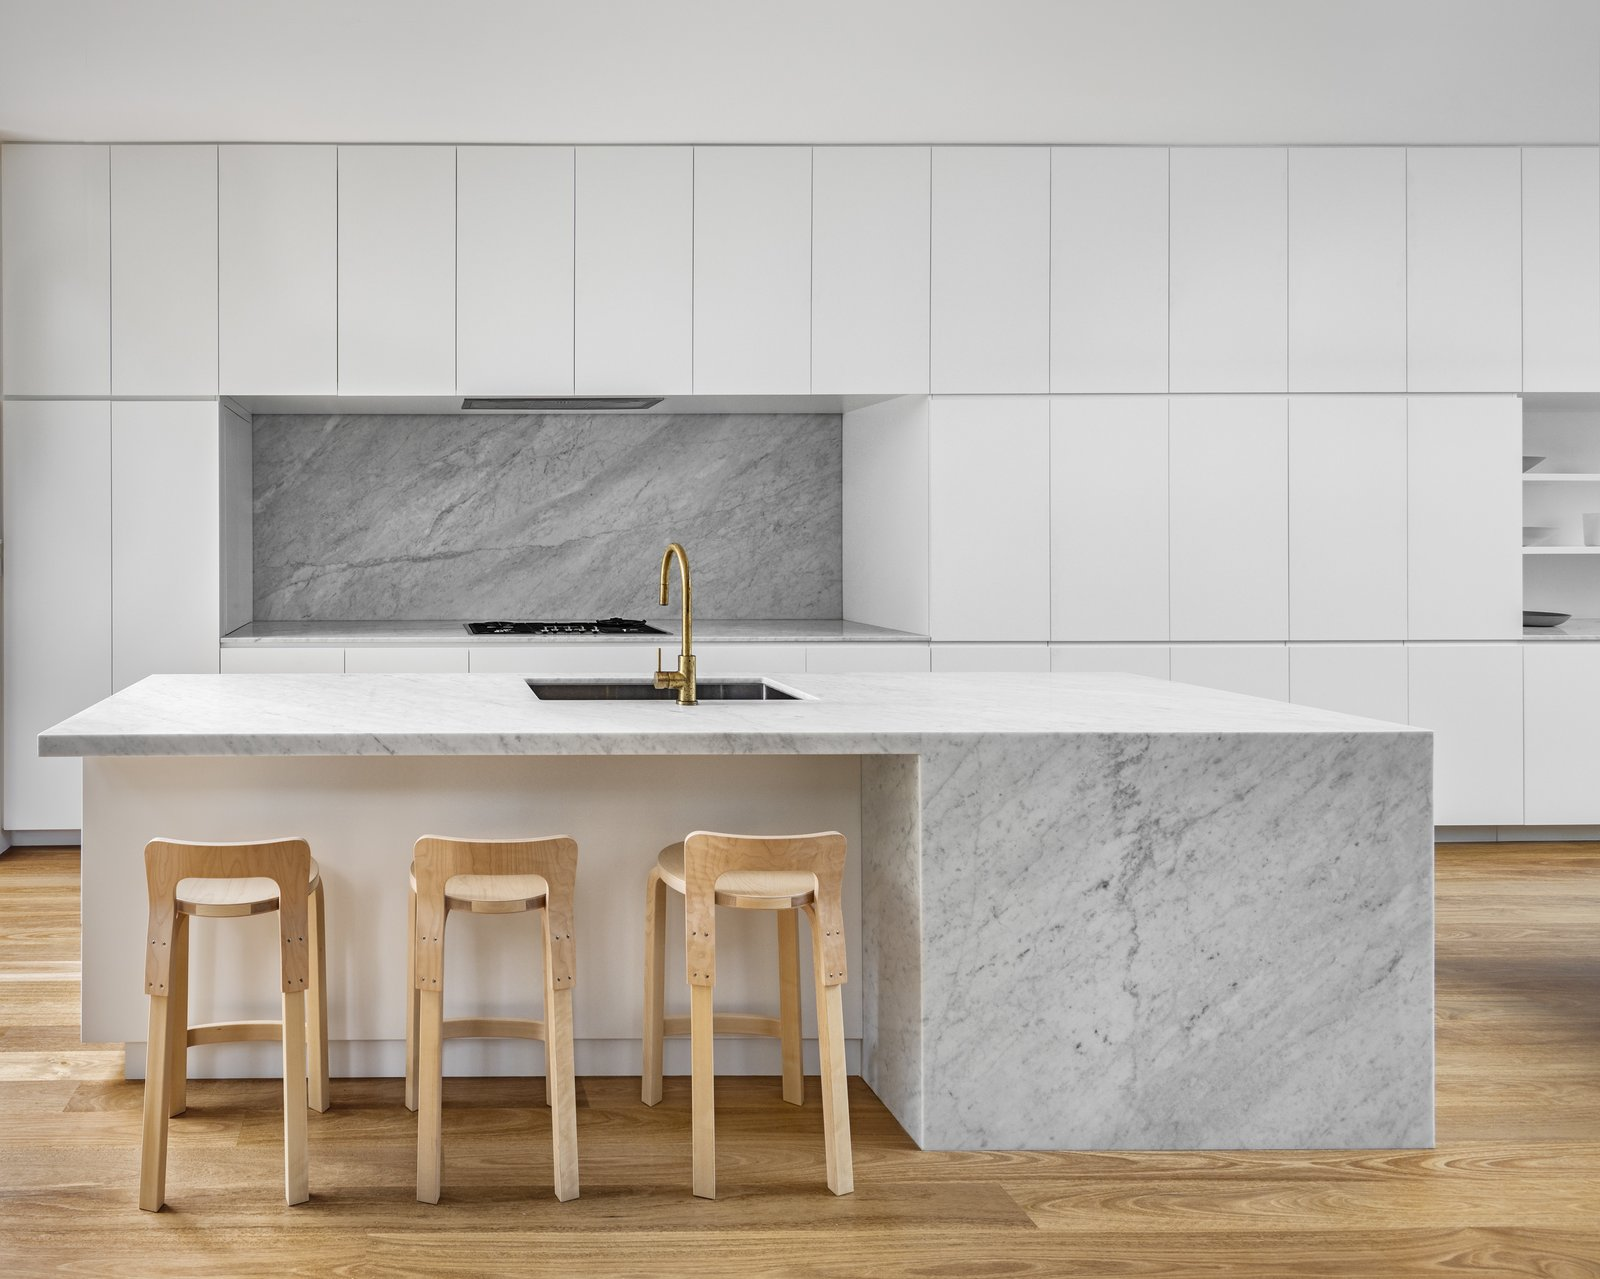 Cloud House marble kitchen island